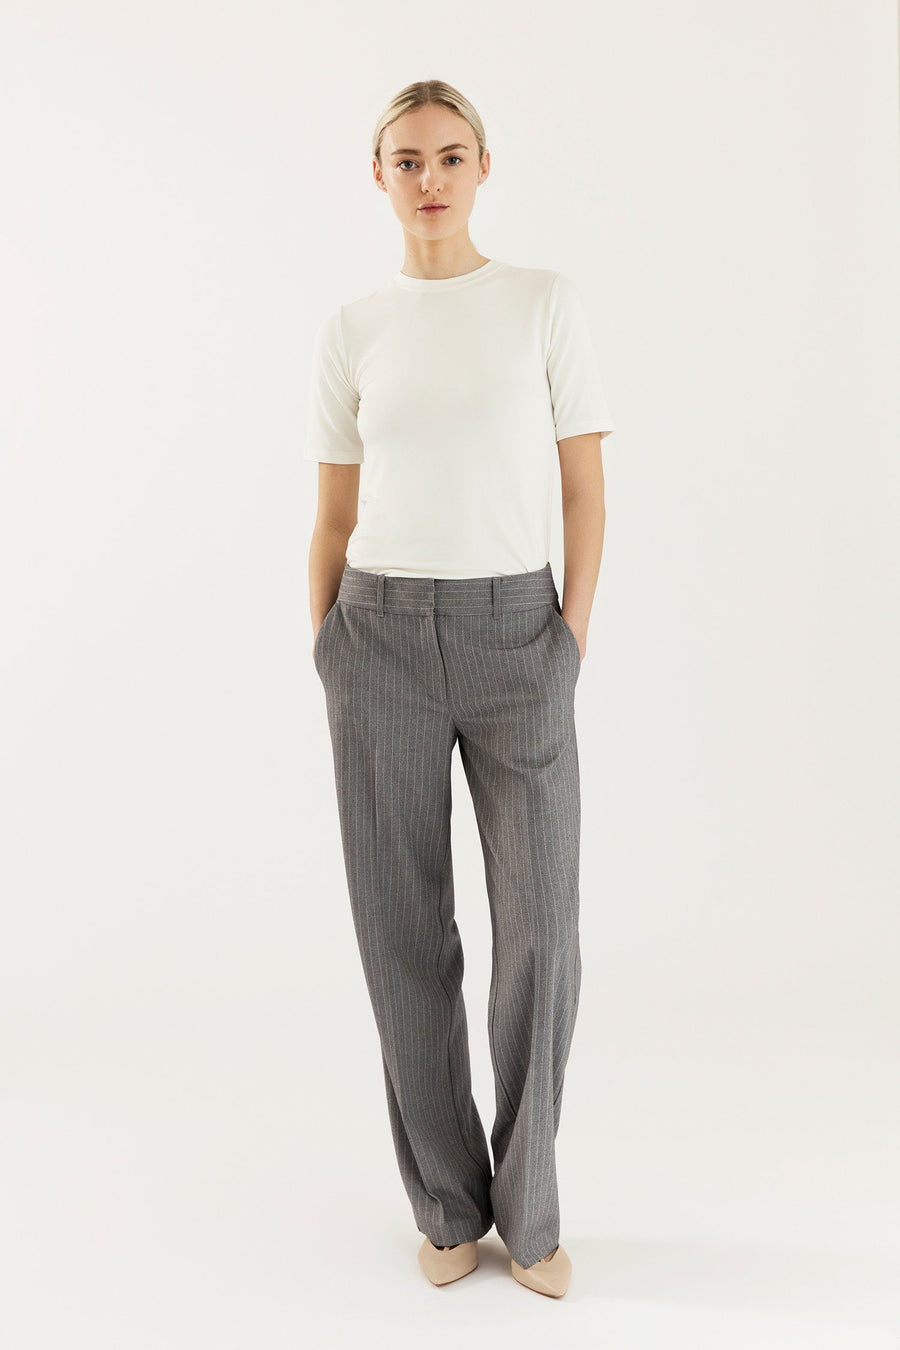 BRIXTON TROUSERS - GREY PINSTIRPE